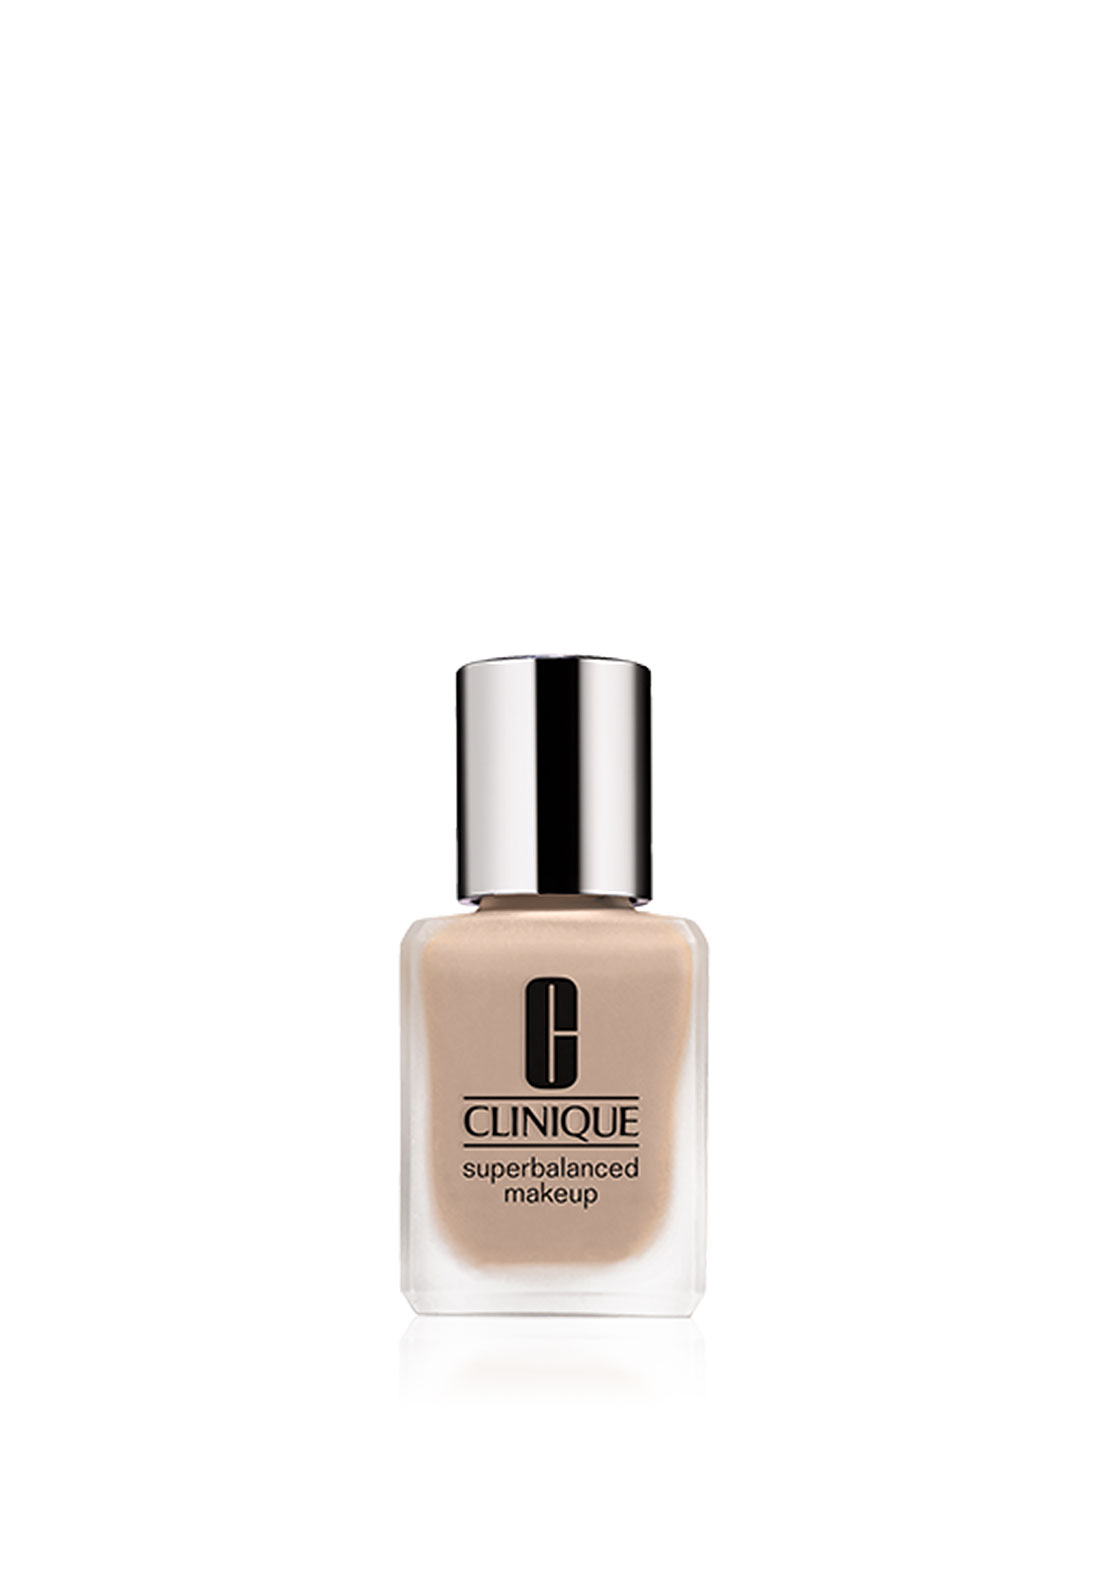 Clinique Superbalanced Make Up Foundation, Ivory